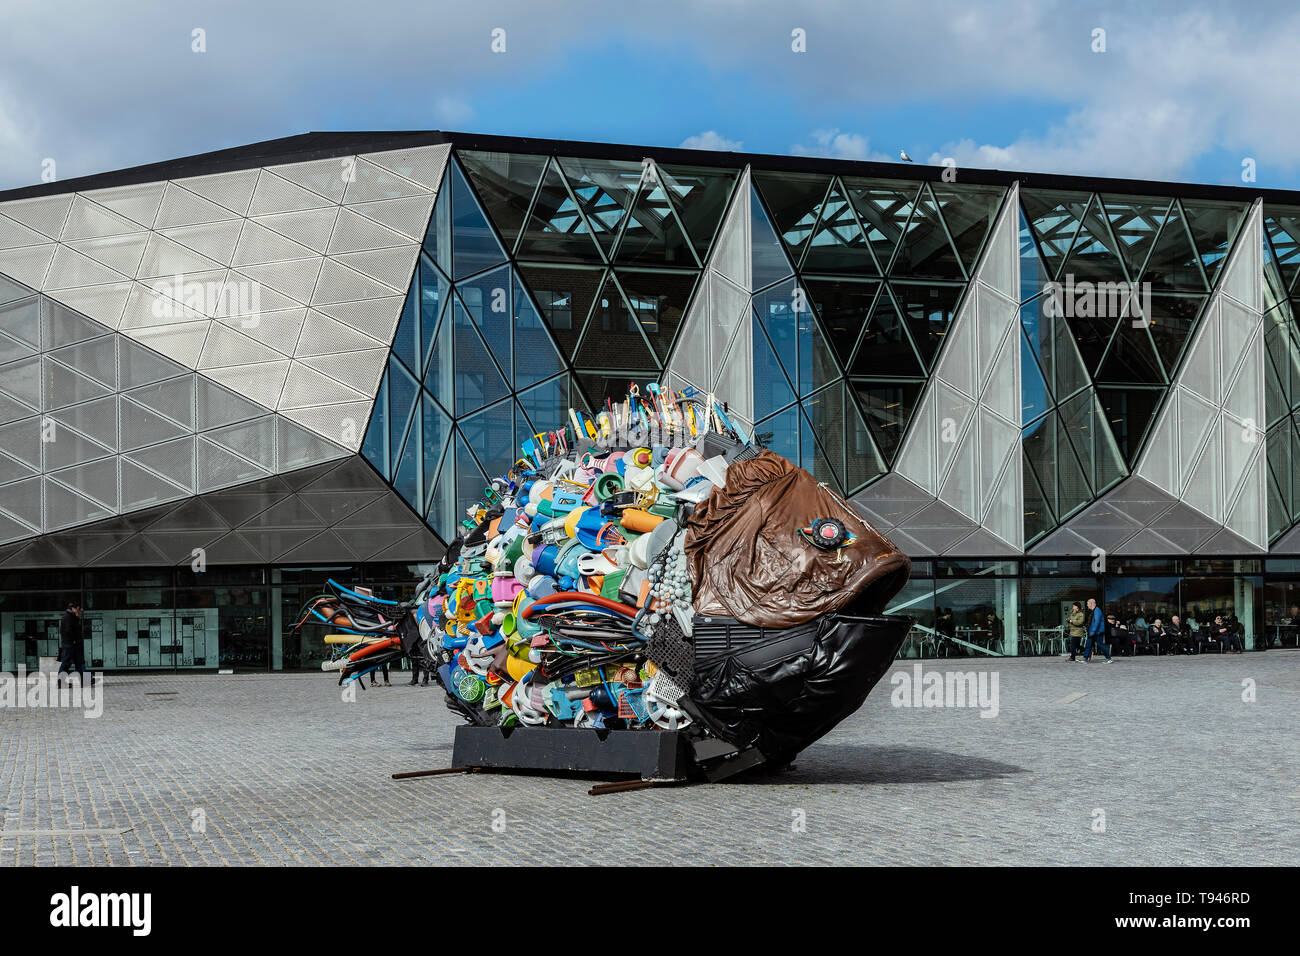 HELSINGOR DENMARK; MARCH 24, 2019: The modern architecture of the Cultural Centre, and a statue of a fish made of plastic rubbish. - Stock Image